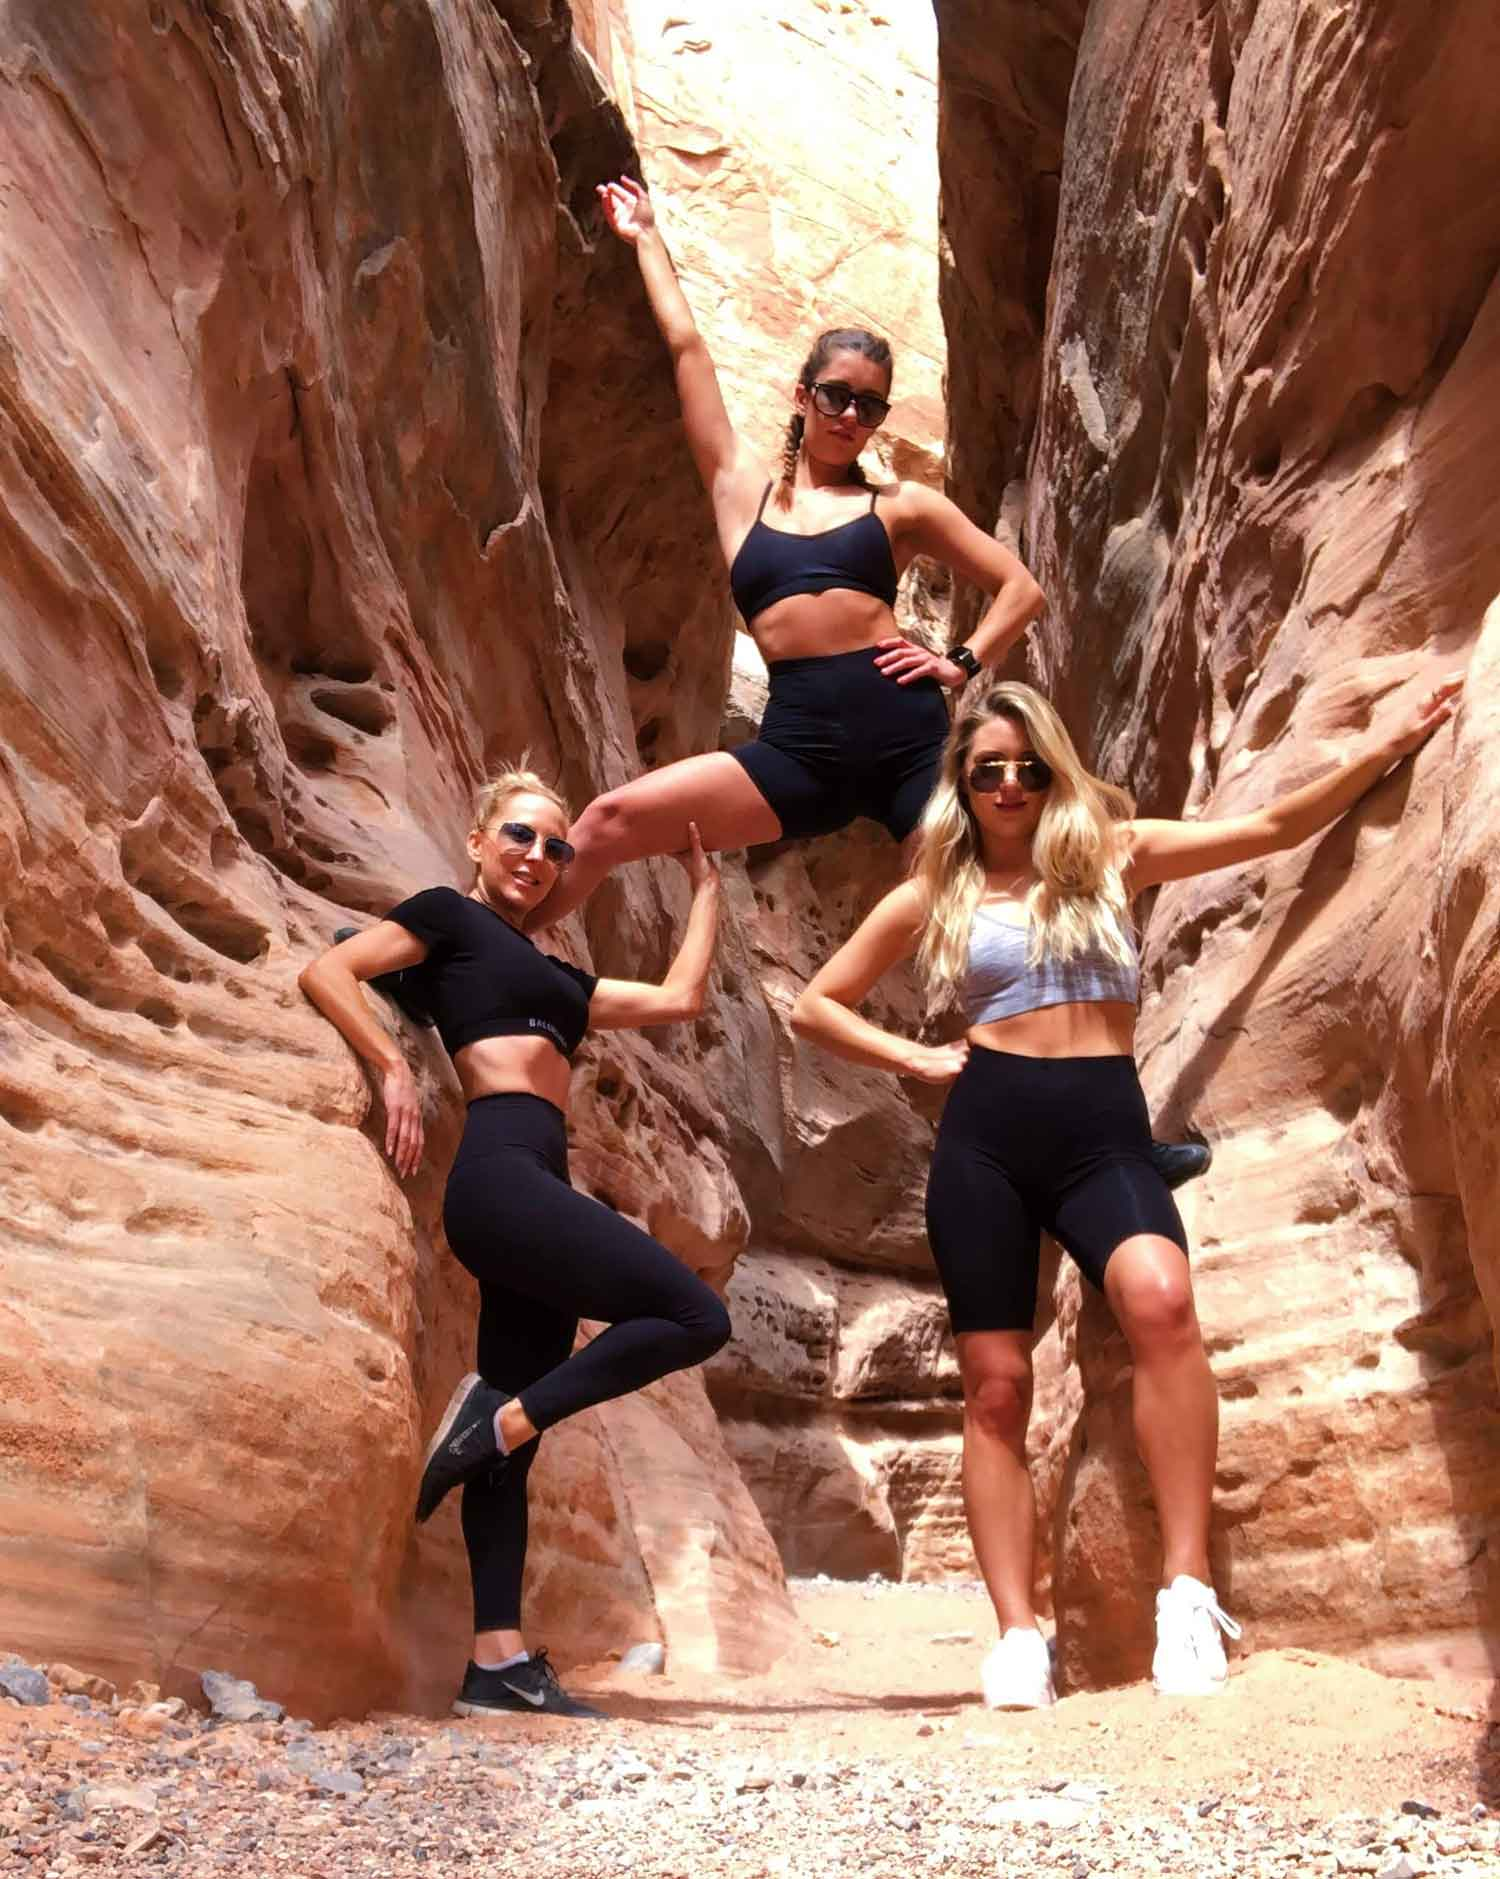 Valley of Fire Slot Canyon